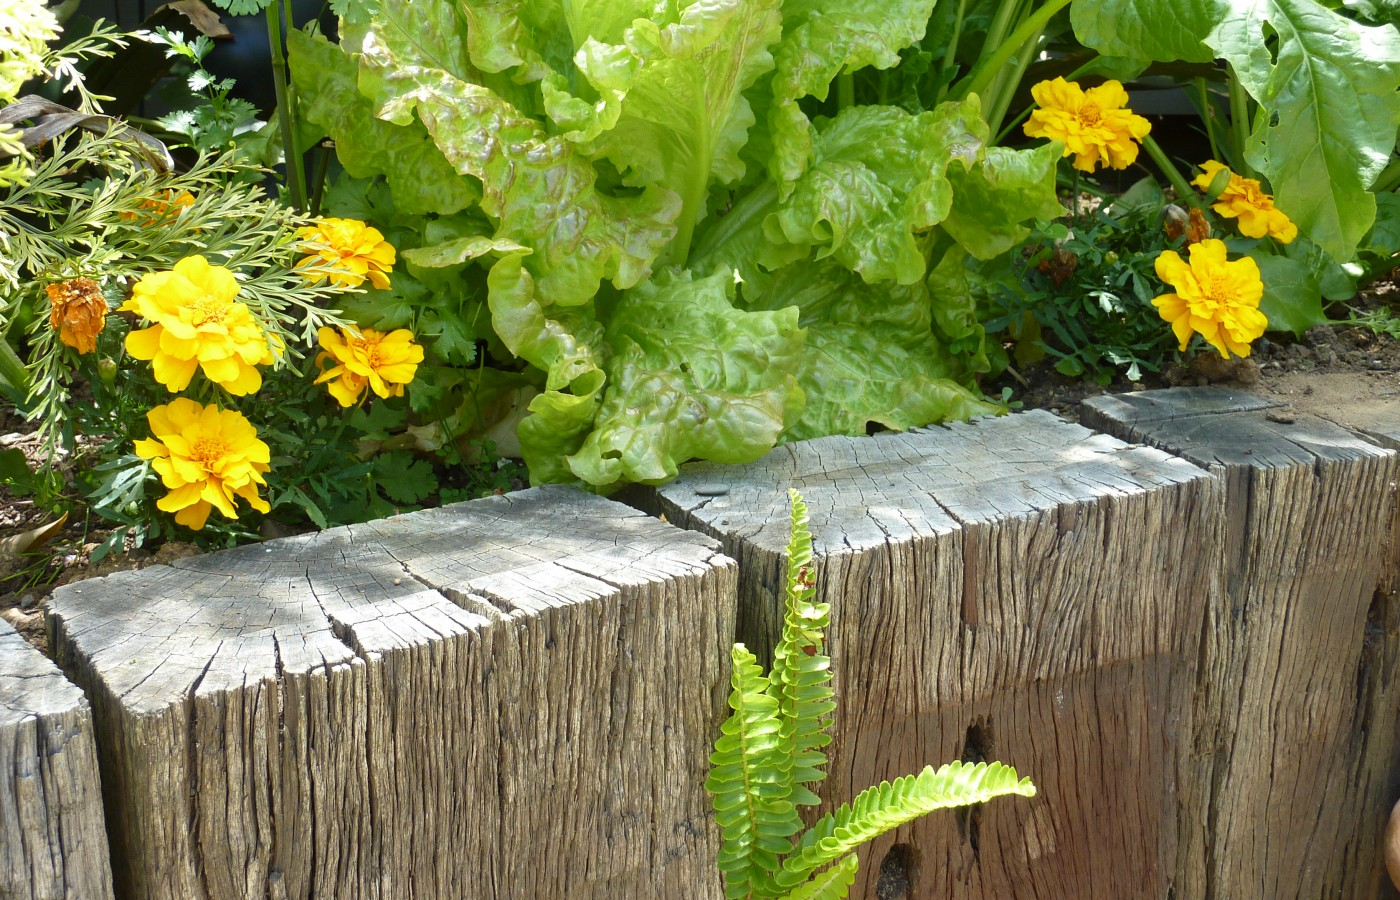 Vegetables and companion planting in raised bed